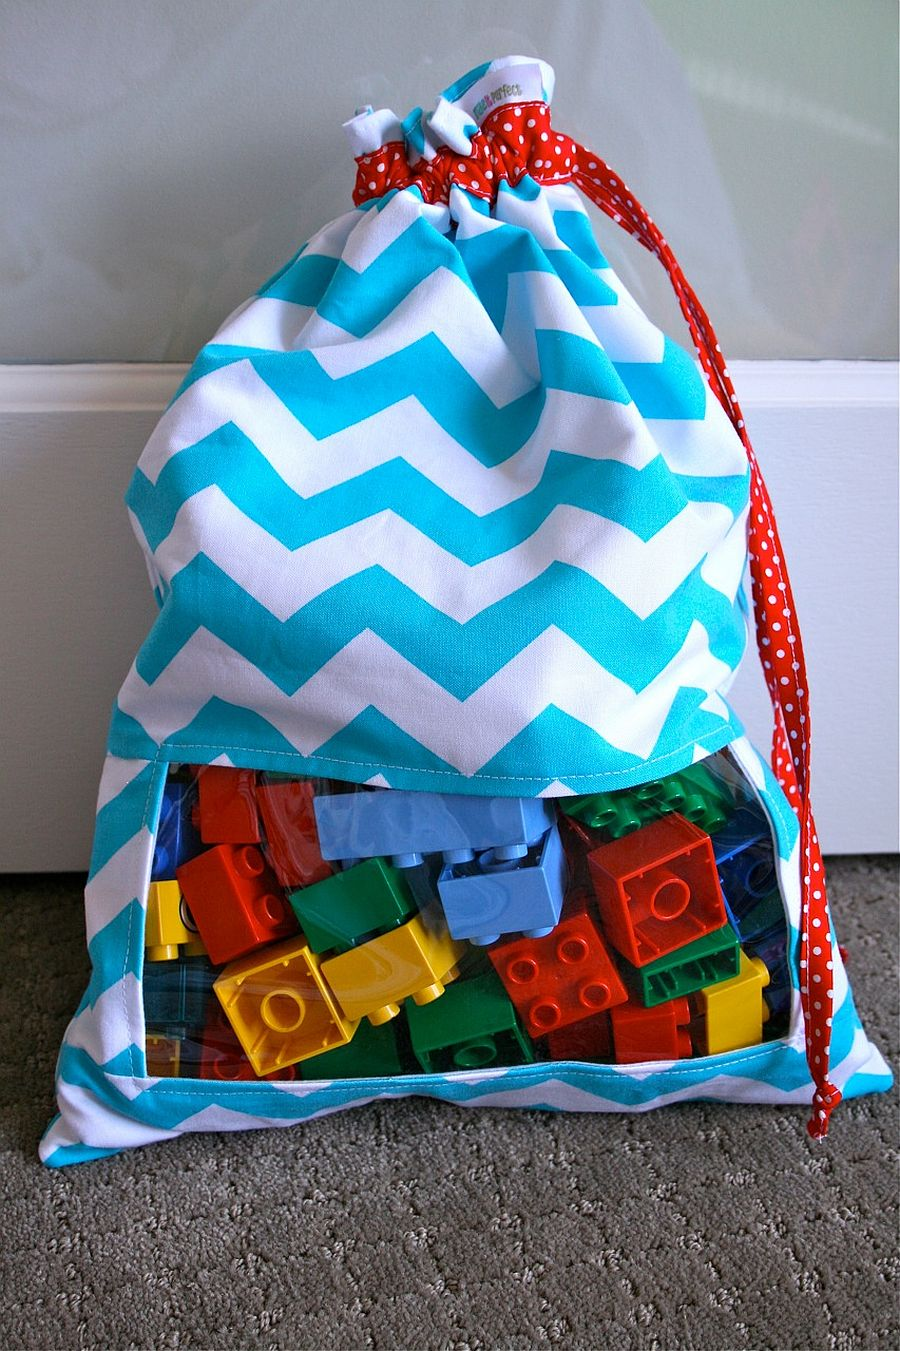 DIY Peek-a-boo Toy Sack Tutorial